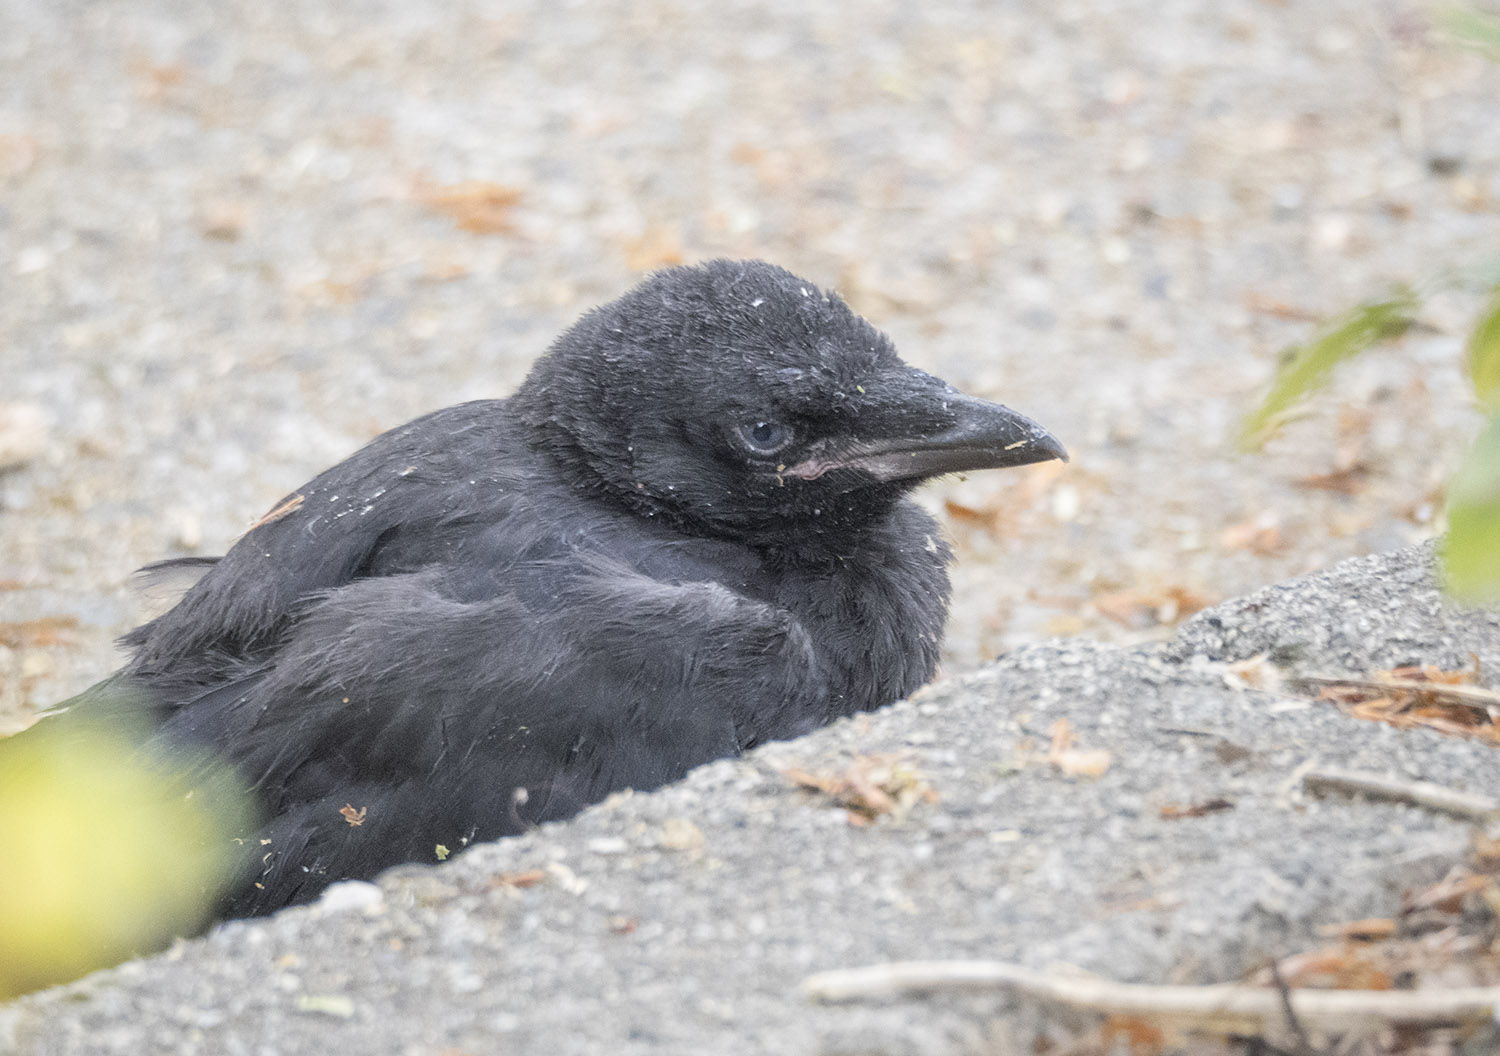 Baby Crow in Gutter